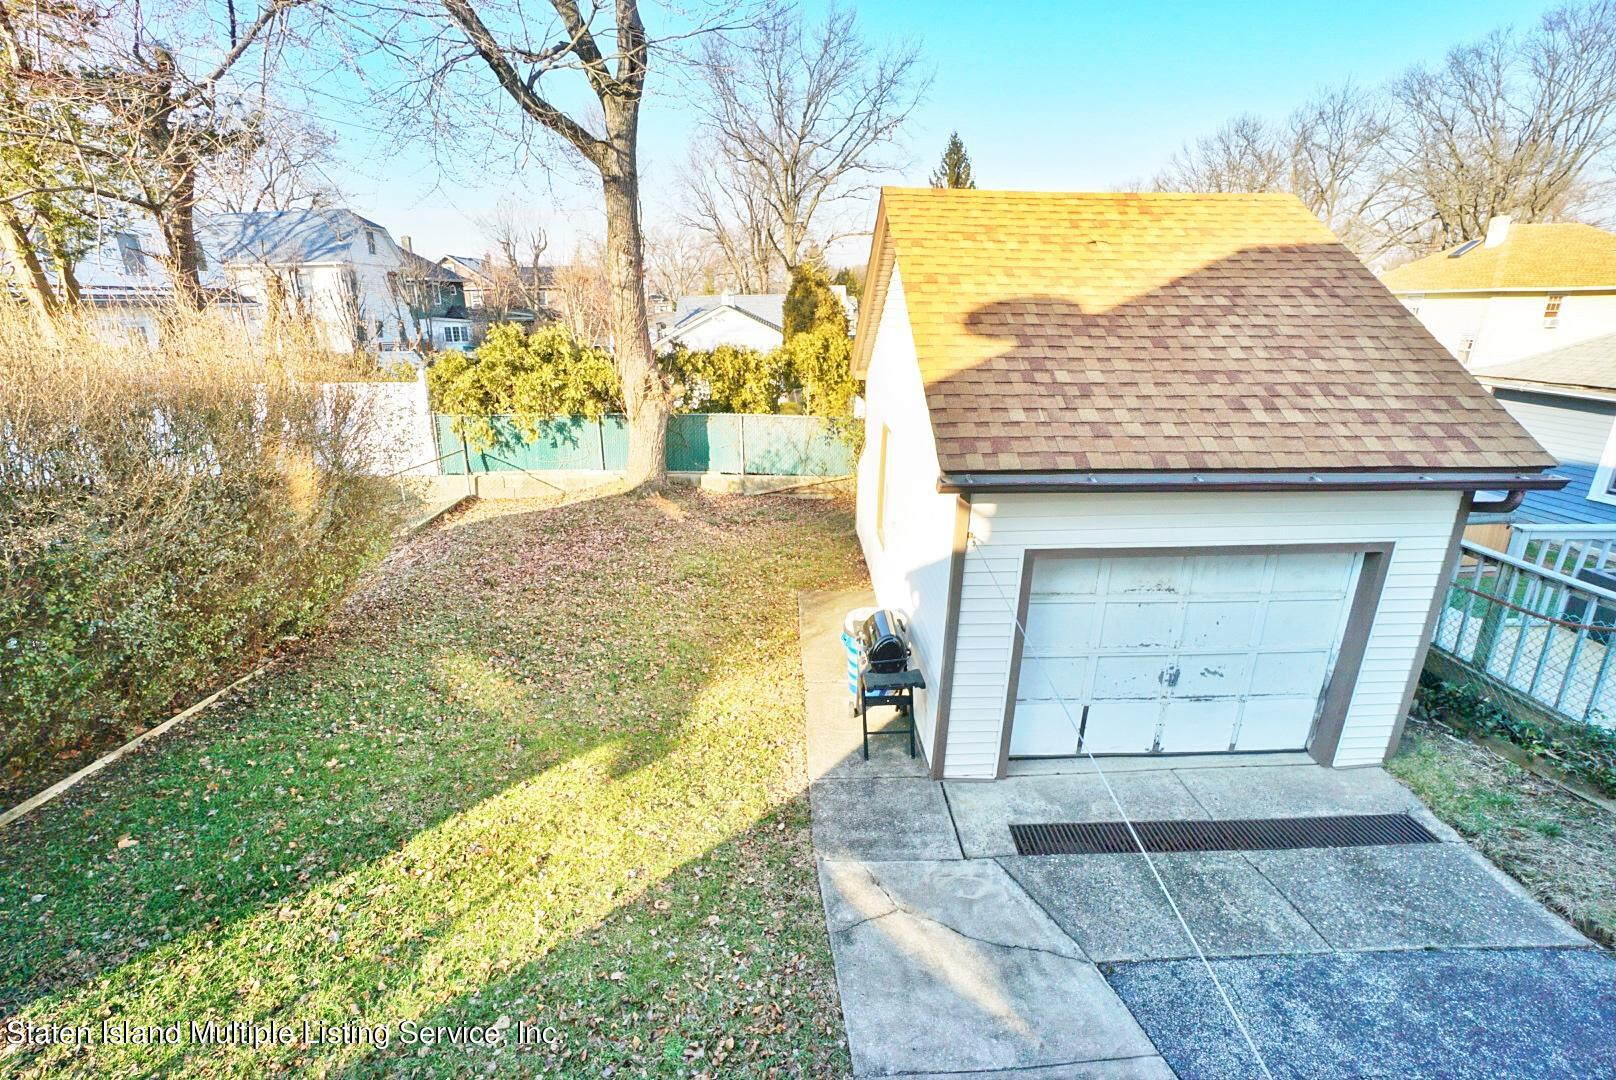 Single Family - Detached 97 Knox Place  Staten Island, NY 10314, MLS-1143147-20